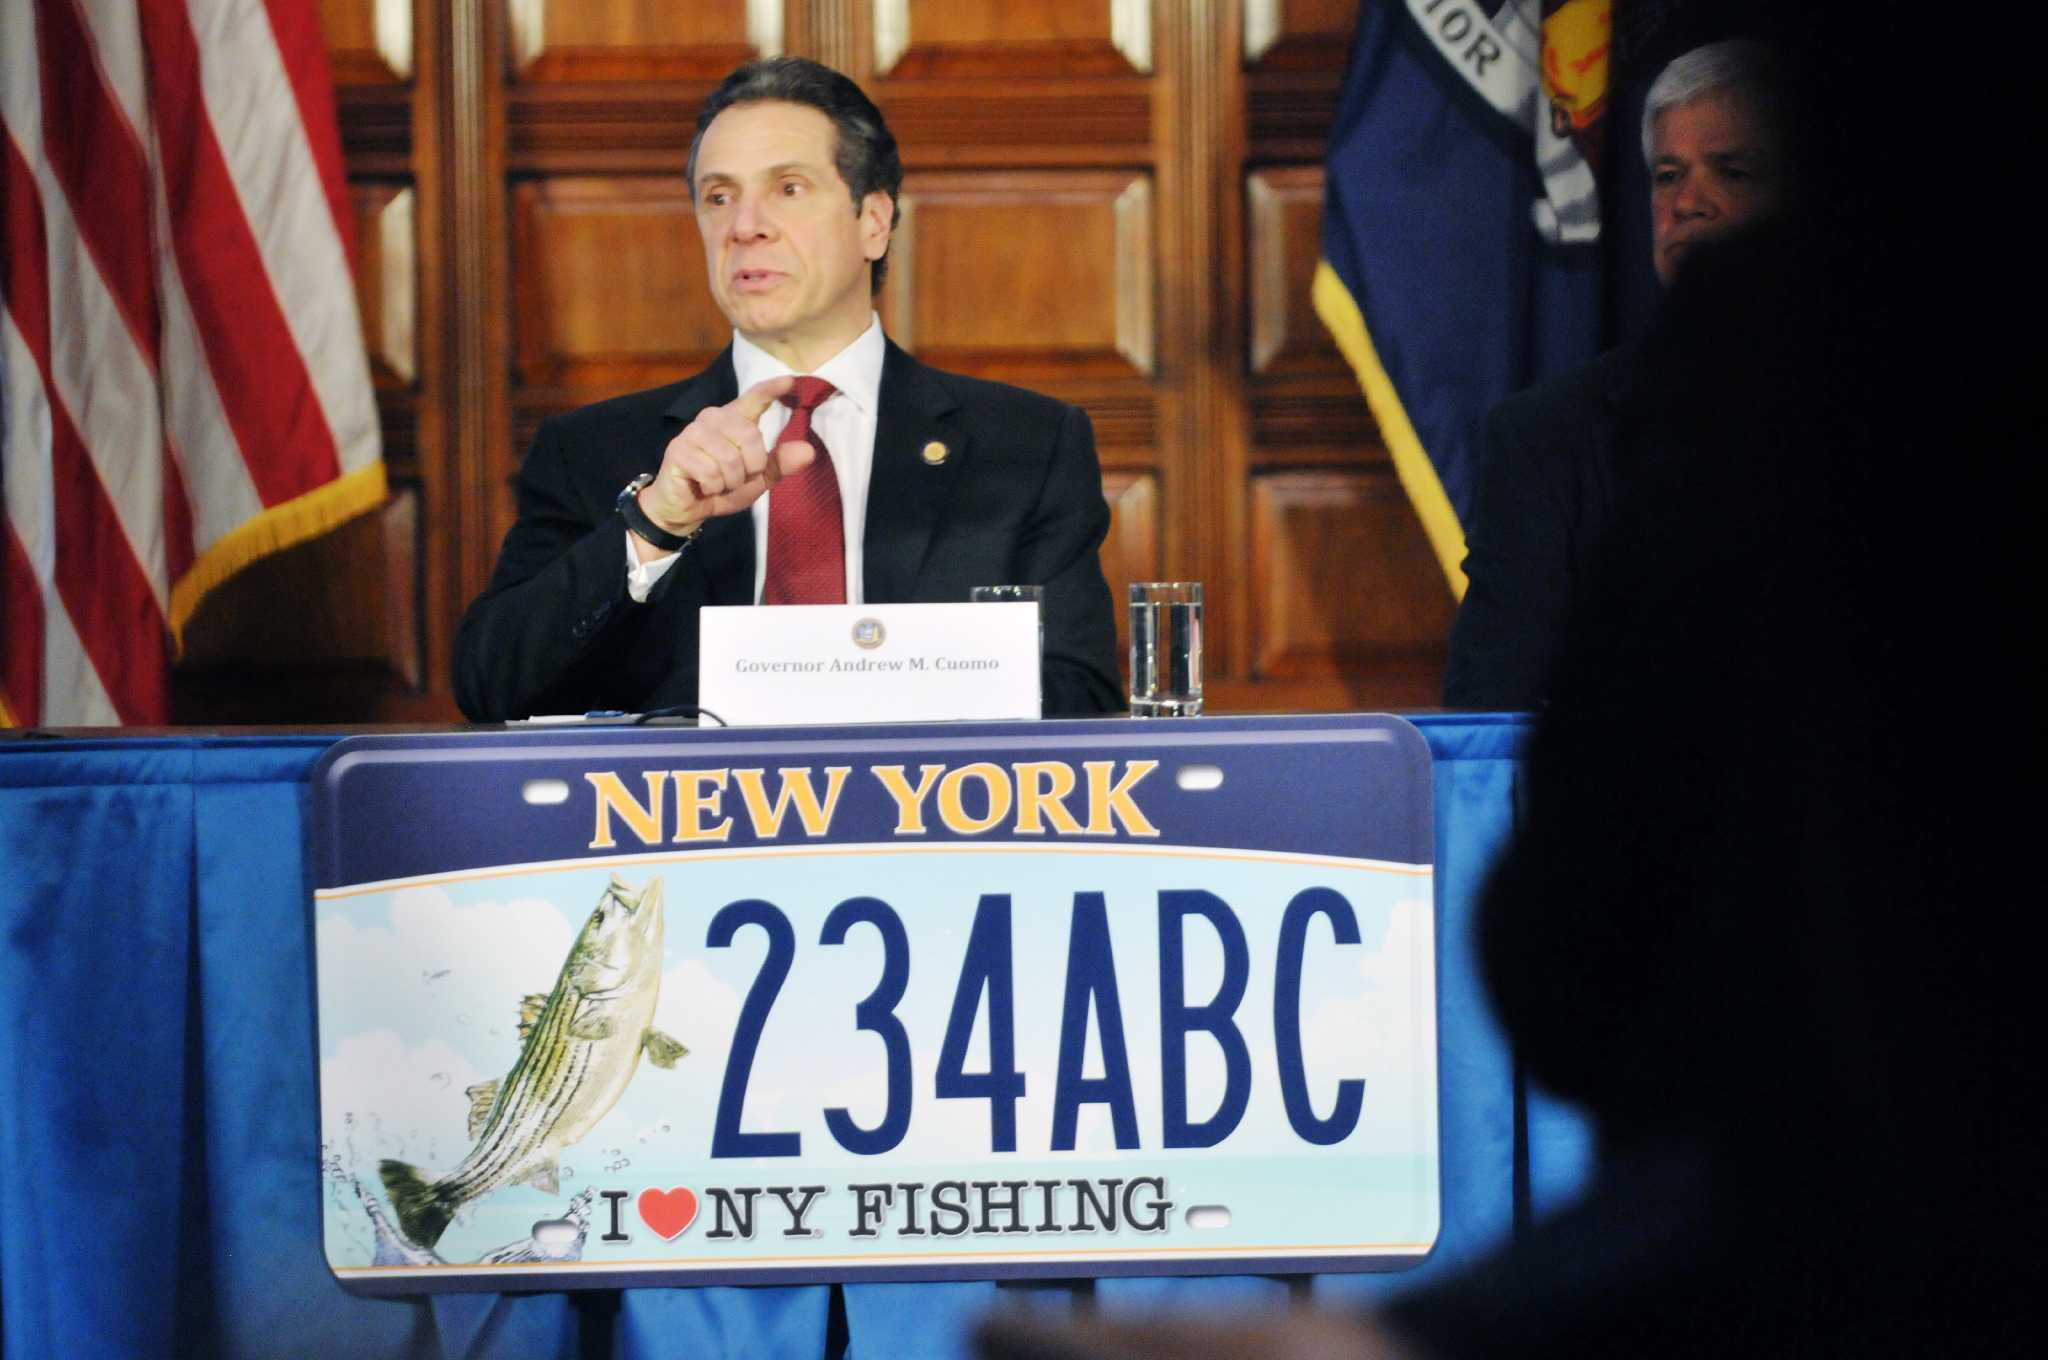 Quick waiver to pack handgun times union for Lifetime fishing license ny